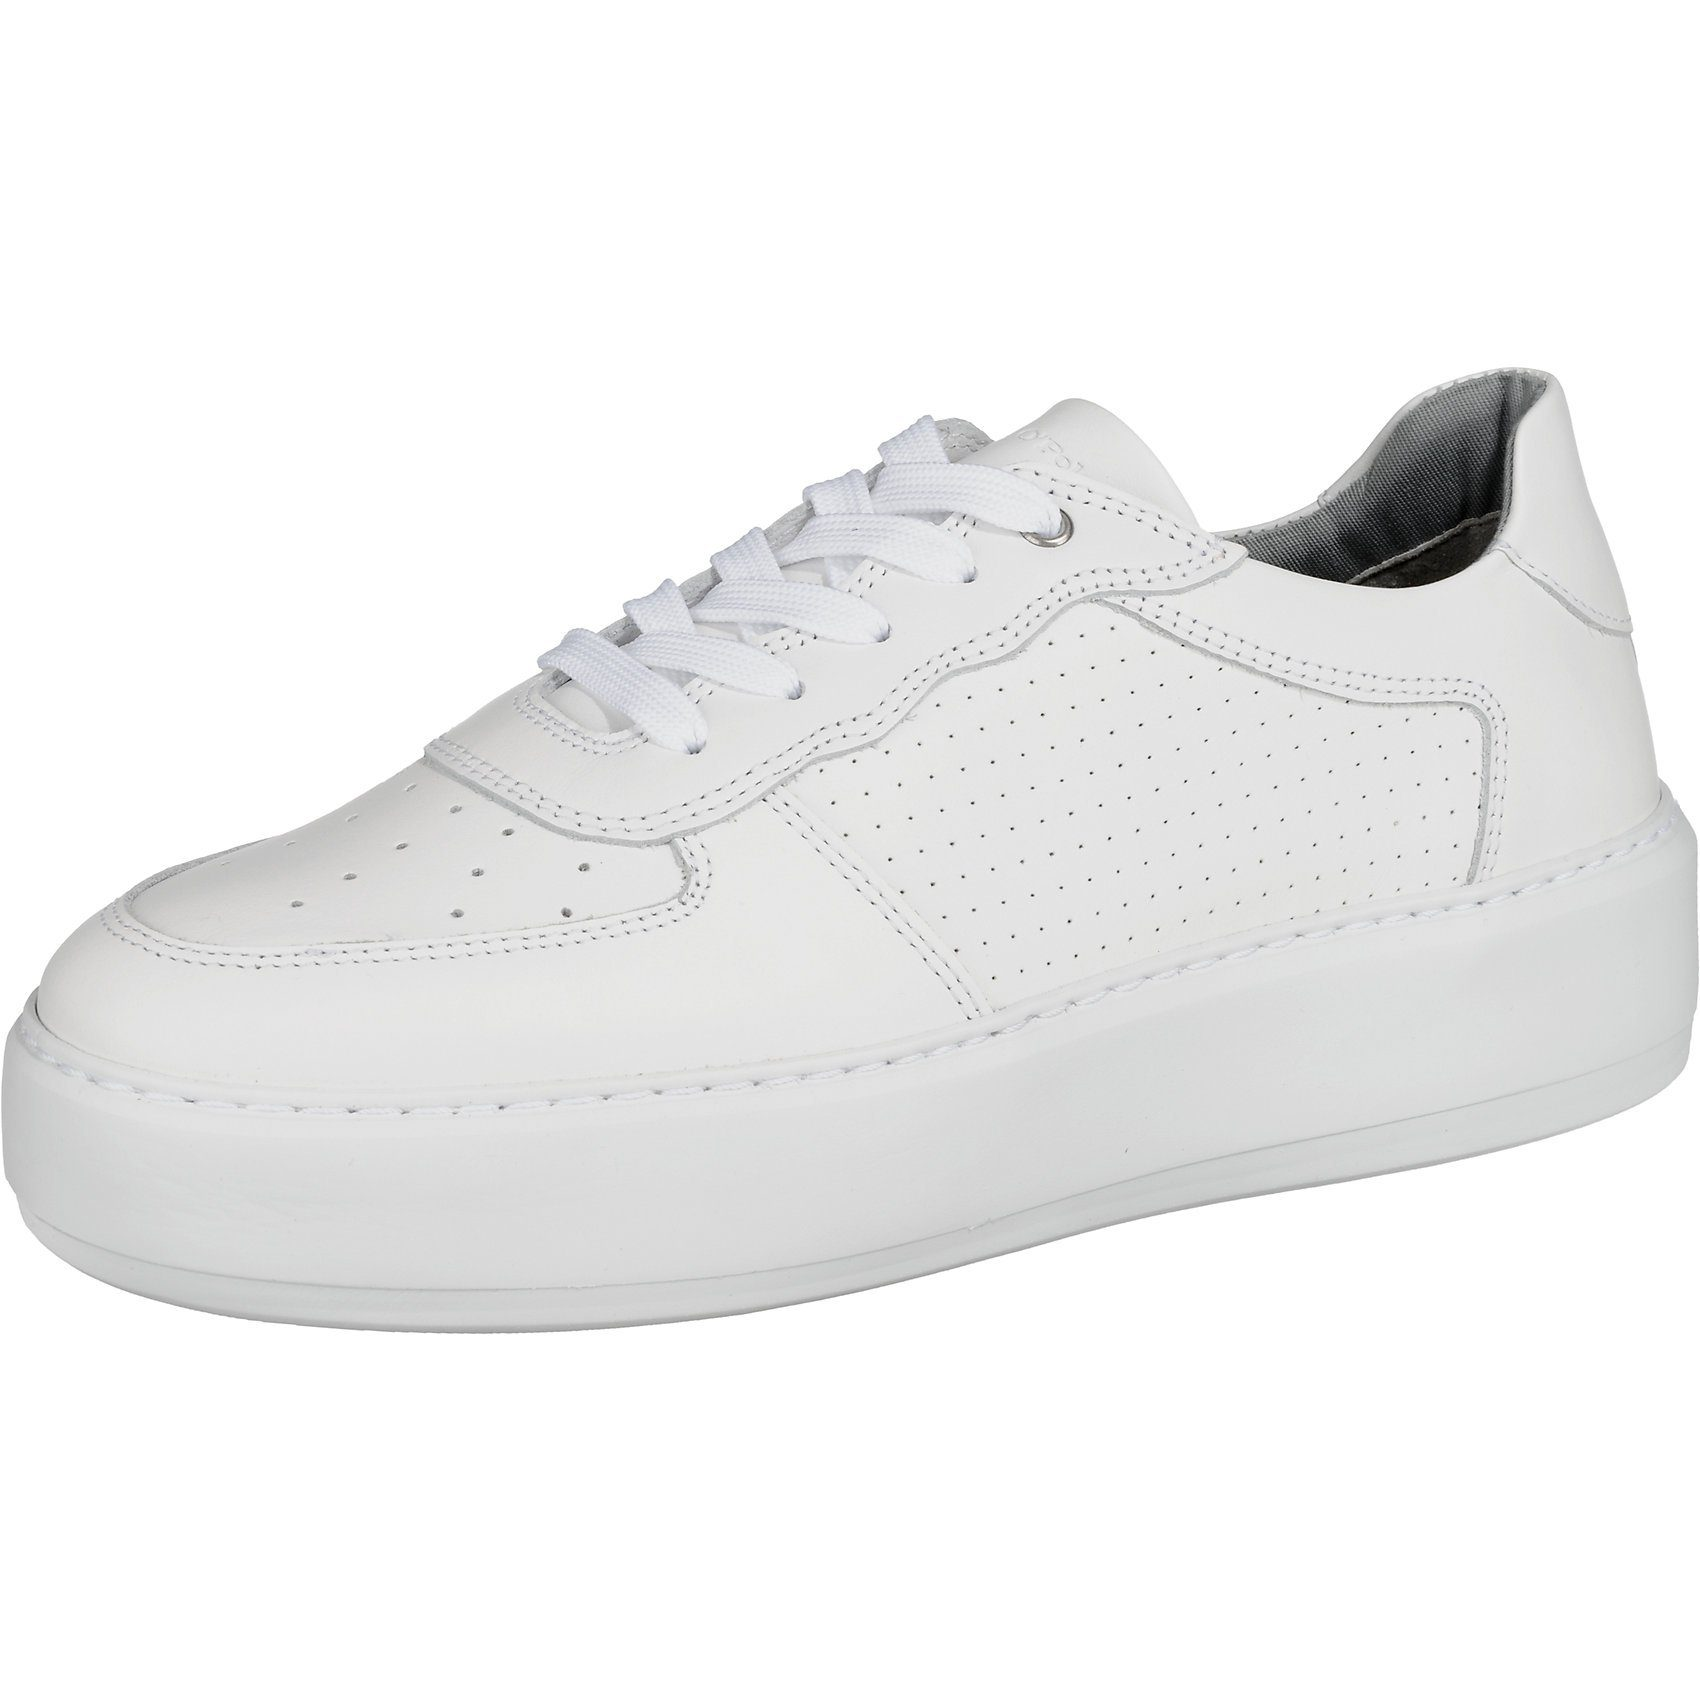 Marc O'Polo Sneakers Low online kaufen | OTTO